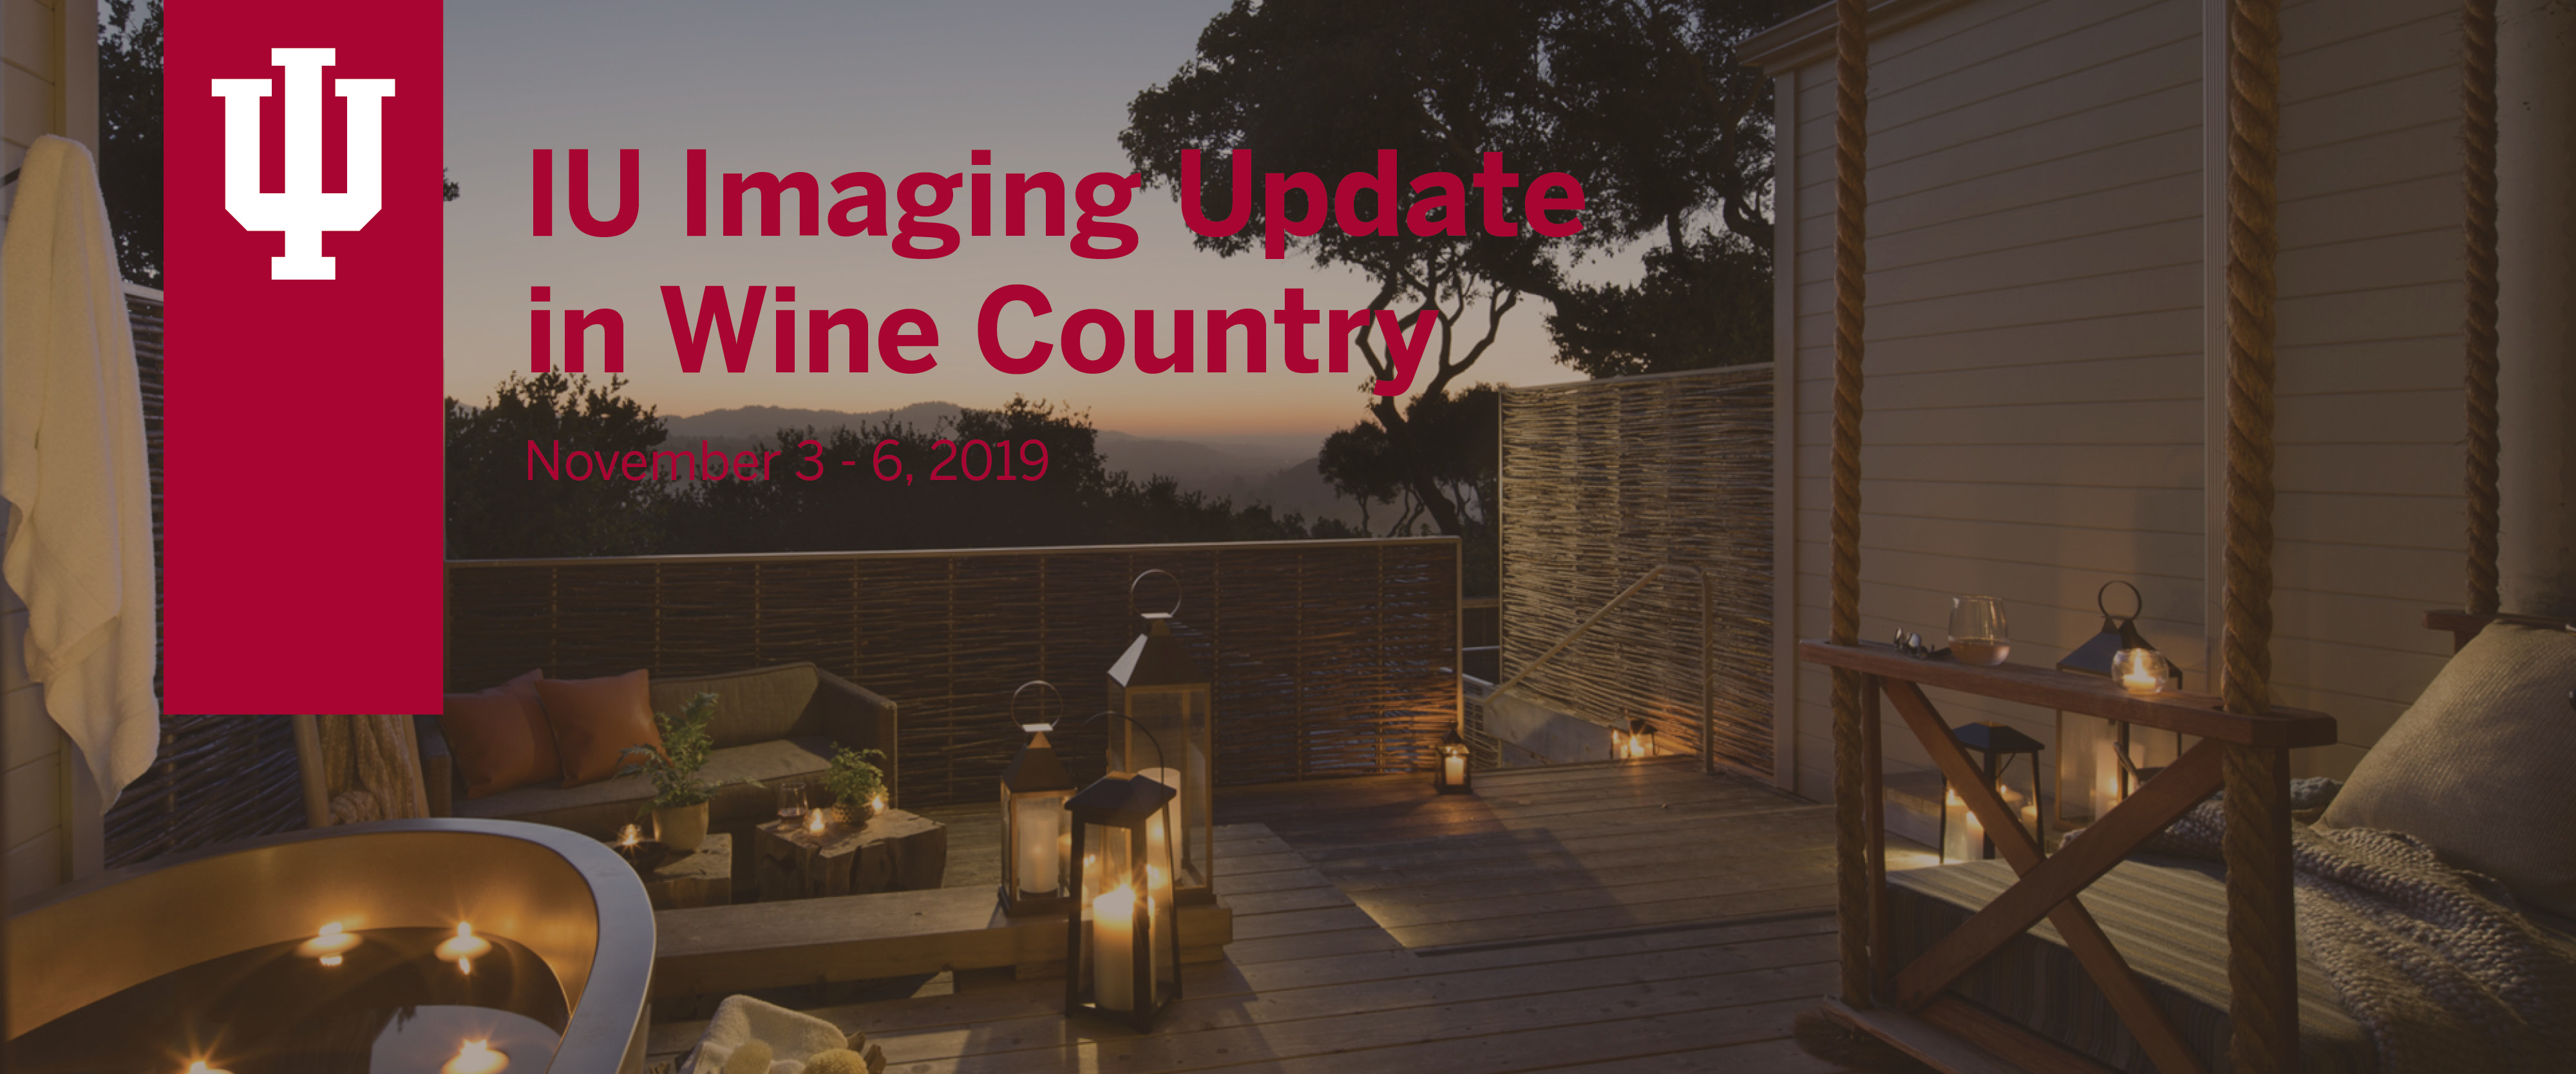 Indiana University Radiology Imaging Update in Wine Country